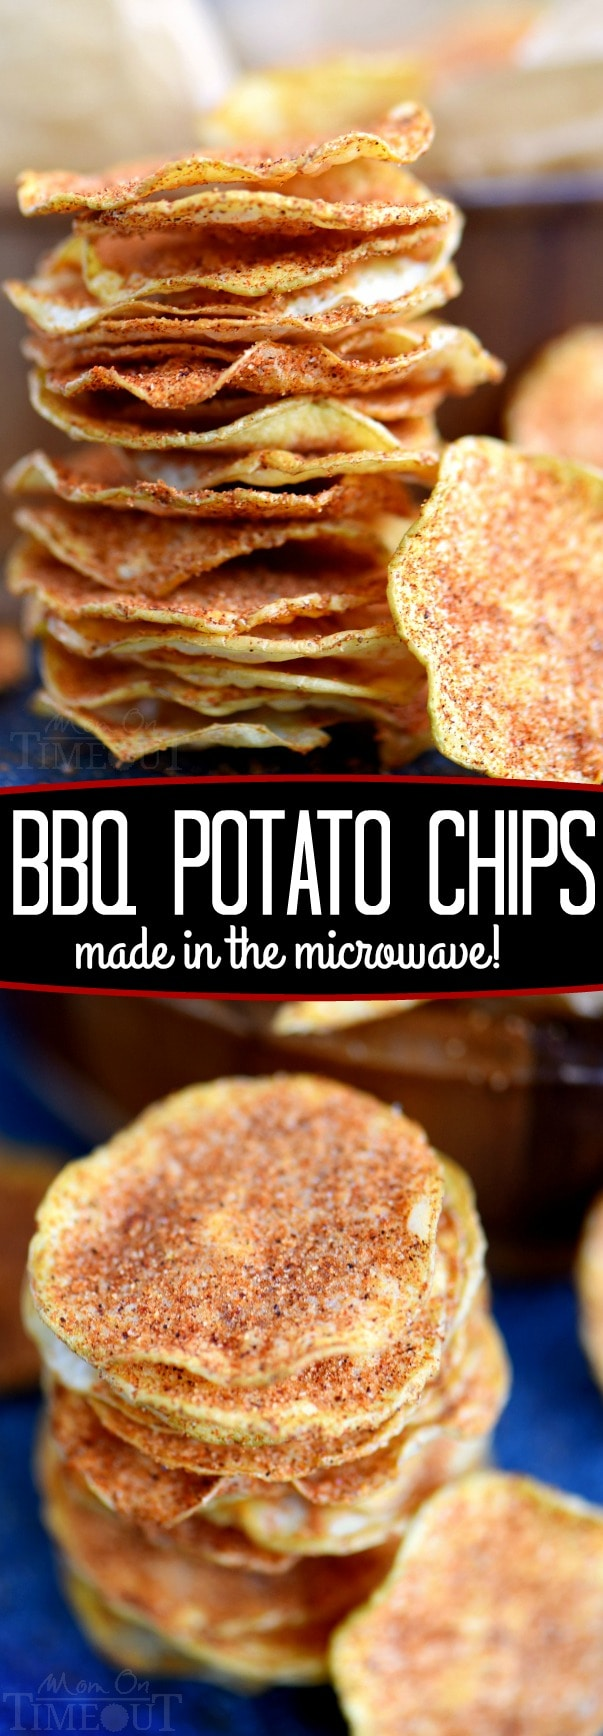 These Microwave BBQ Potato Chips are a cinch to make and are perfect for game day or snack time! A little sweet, a little salty, and a lot crunchy, these chips are sure to become your new favorite addiction! // Mom On Timeout